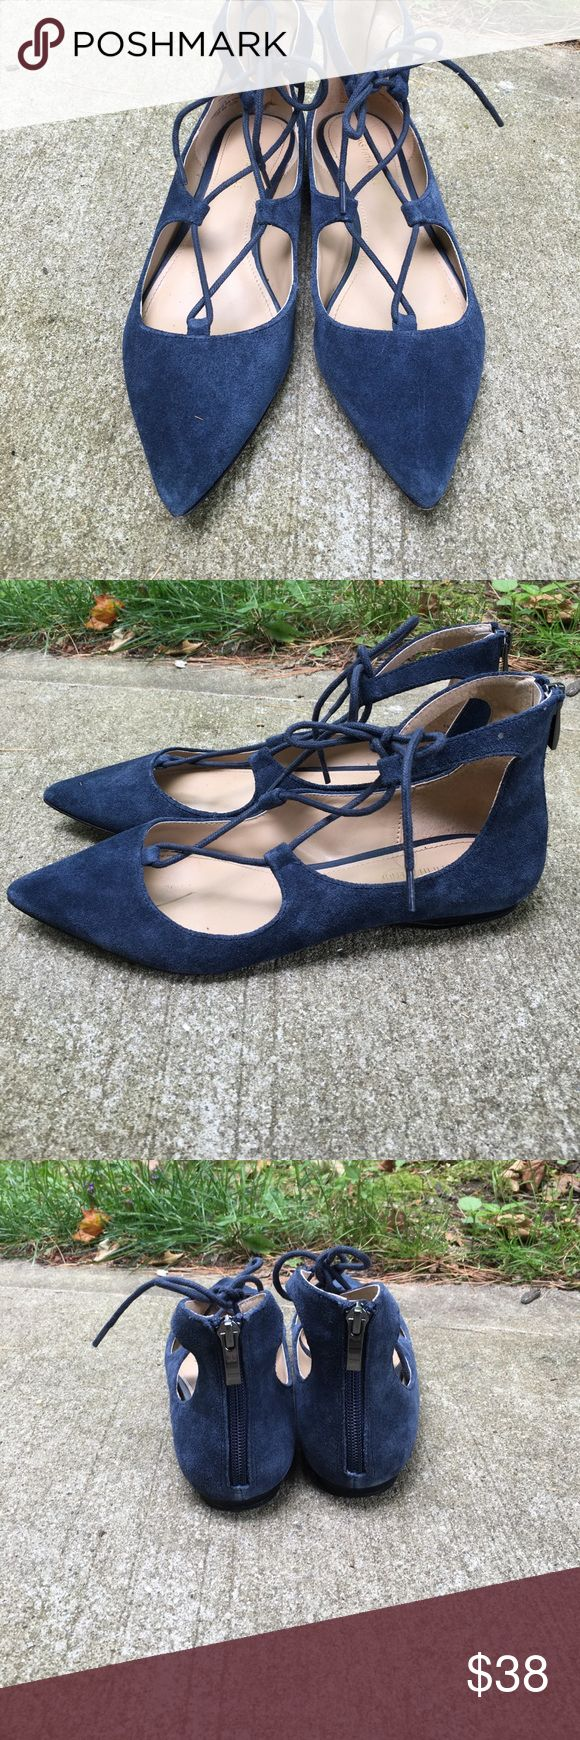 Saks Off Fifth Tie Flats! Worn a handful of times. You can only tell signs of wear from the bottom. Size 8. Awesome blue color in great condition. SUEDE. Saks Fifth Avenue Shoes Flats & Loafers